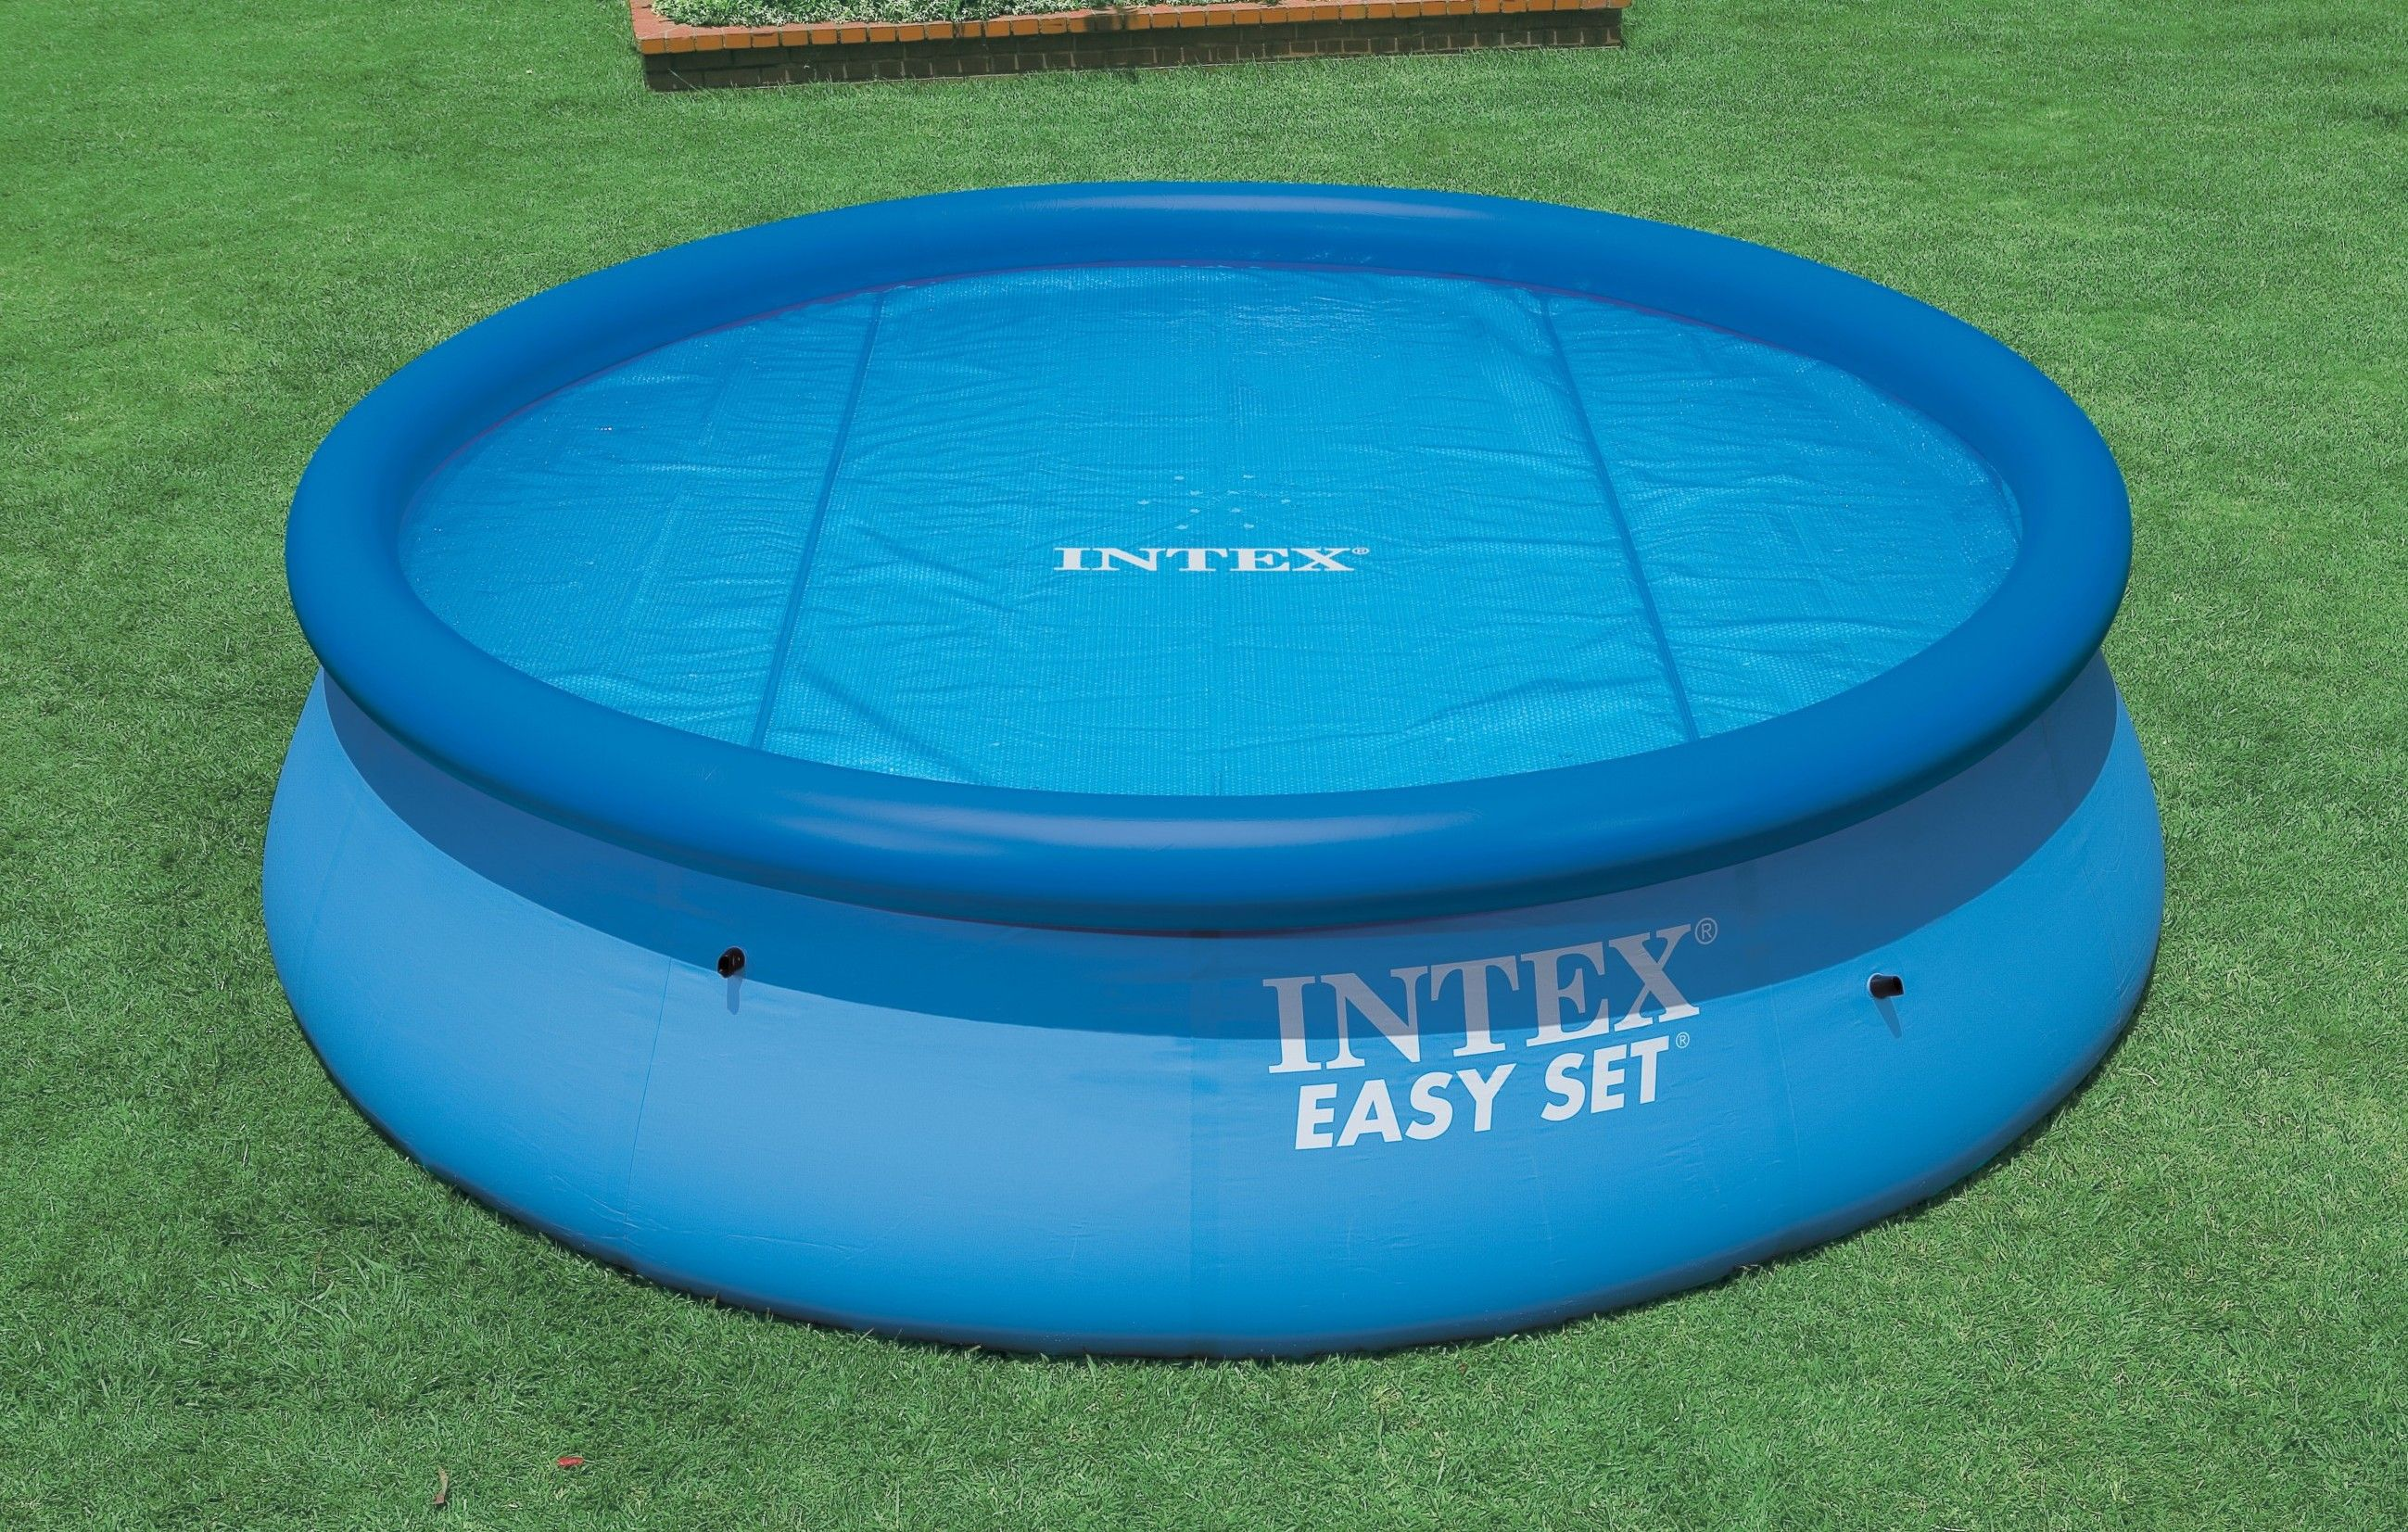 Abdeckplane Pool Steinbach Intex Pool Poolfolie Ersatzfolie Für Intex Easy And Frame